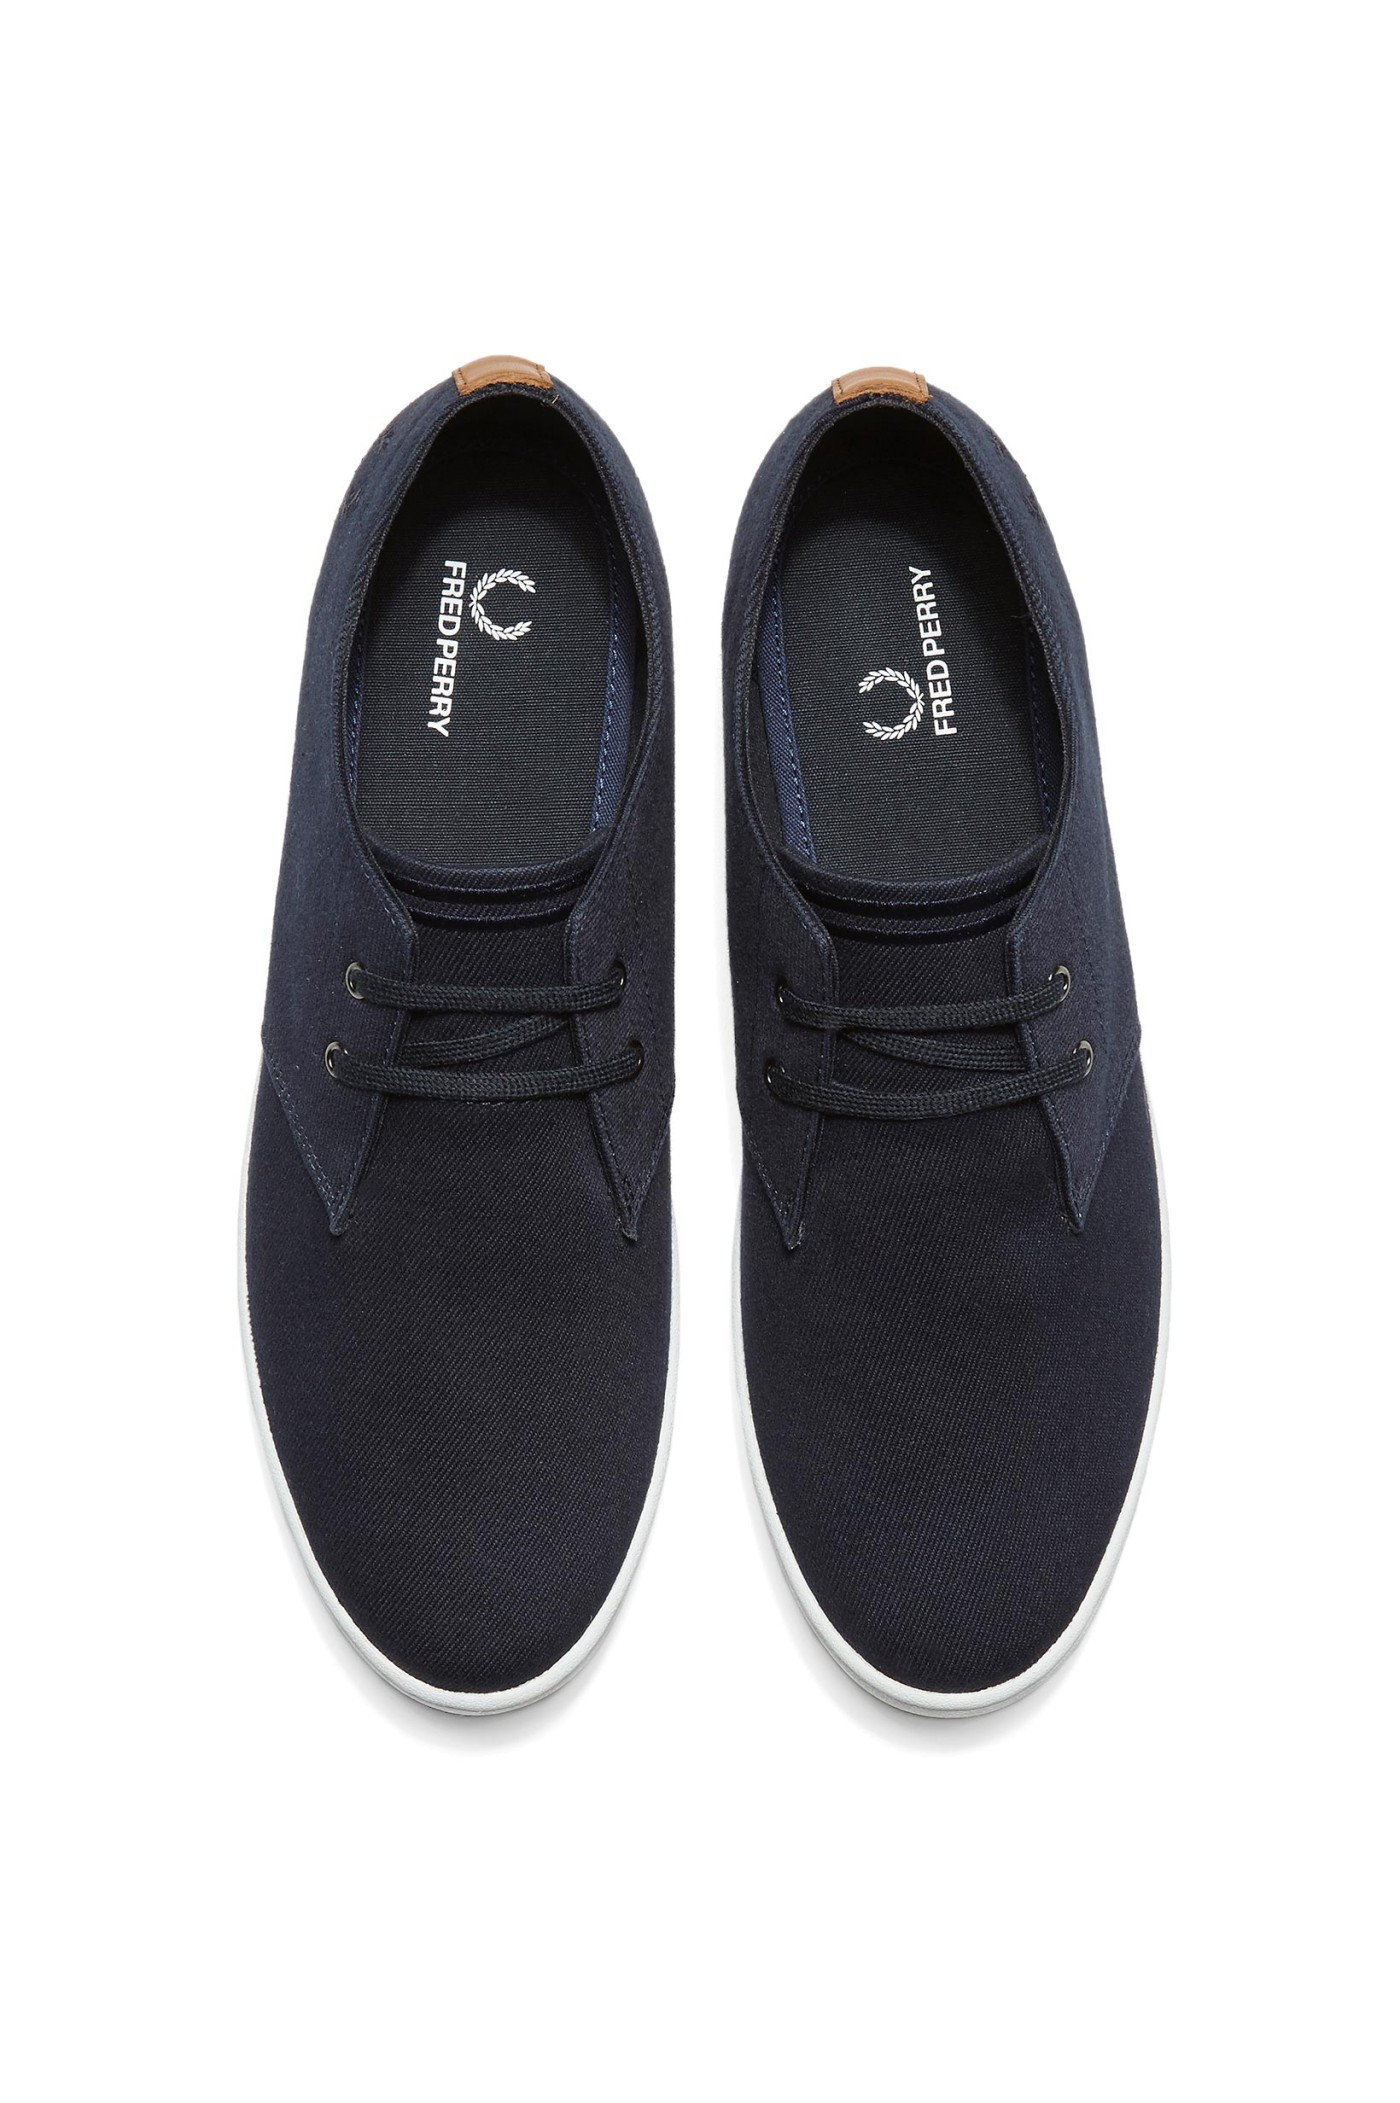 plus récent 74087 6ab85 Byron Low Twill by Fred Perry